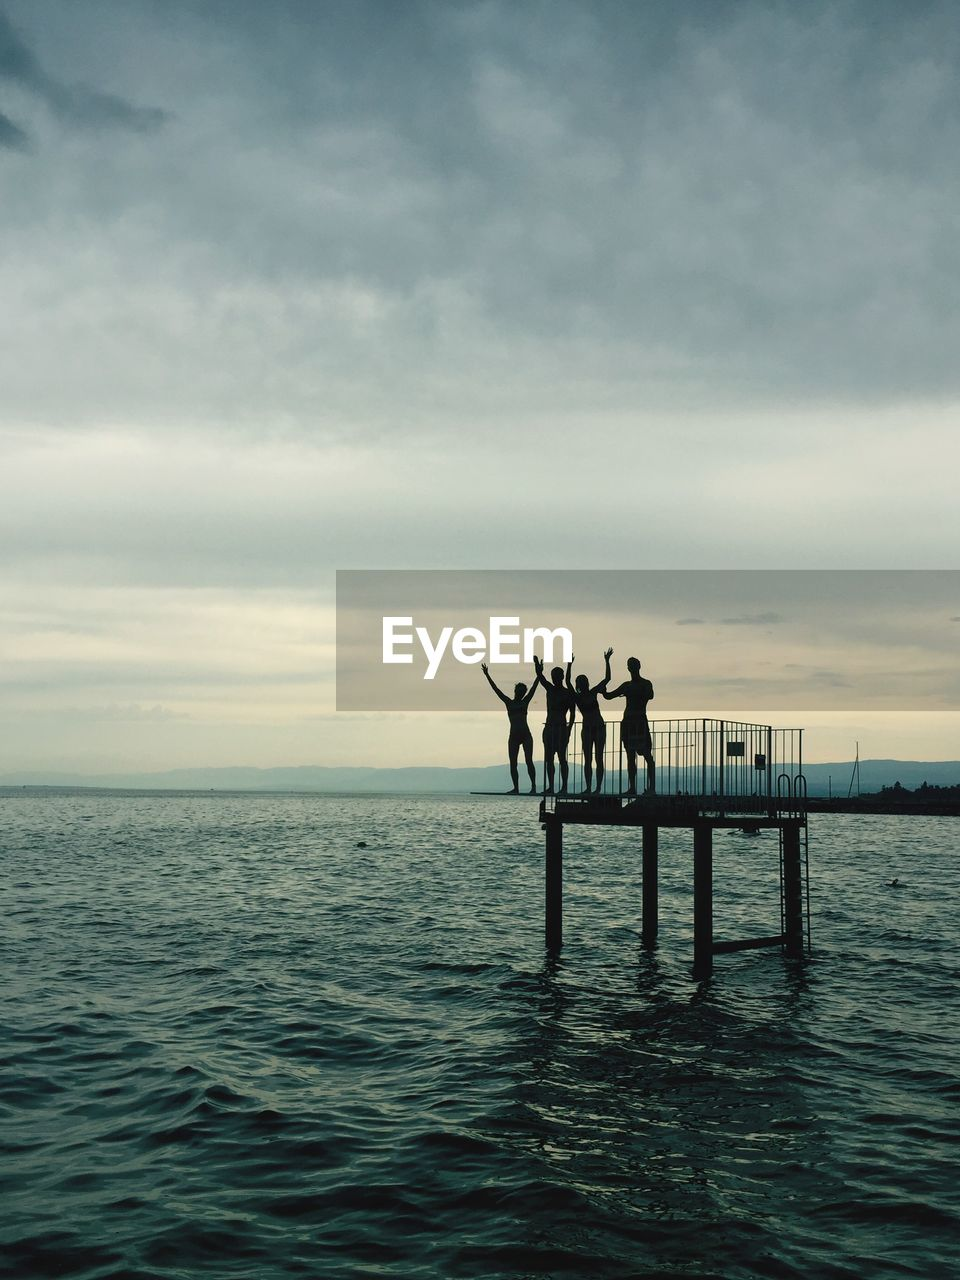 water, sky, sea, waterfront, real people, beauty in nature, cloud - sky, scenics - nature, group of people, men, horizon, silhouette, horizon over water, lifestyles, standing, leisure activity, nature, sunset, pier, outdoors, arms raised